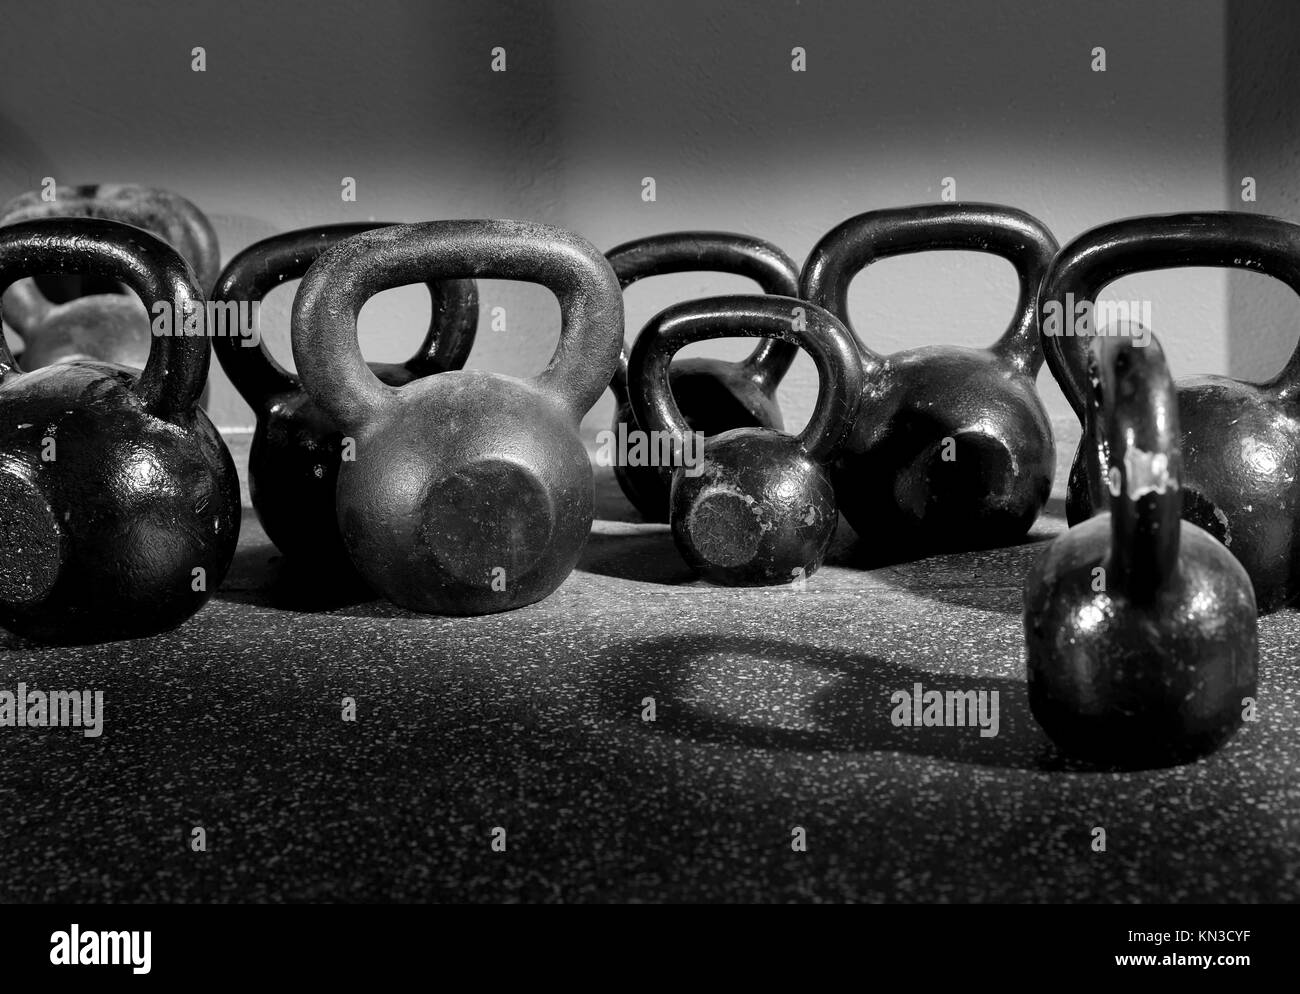 Kettlebells weights in a workout gym in black and white. - Stock Image